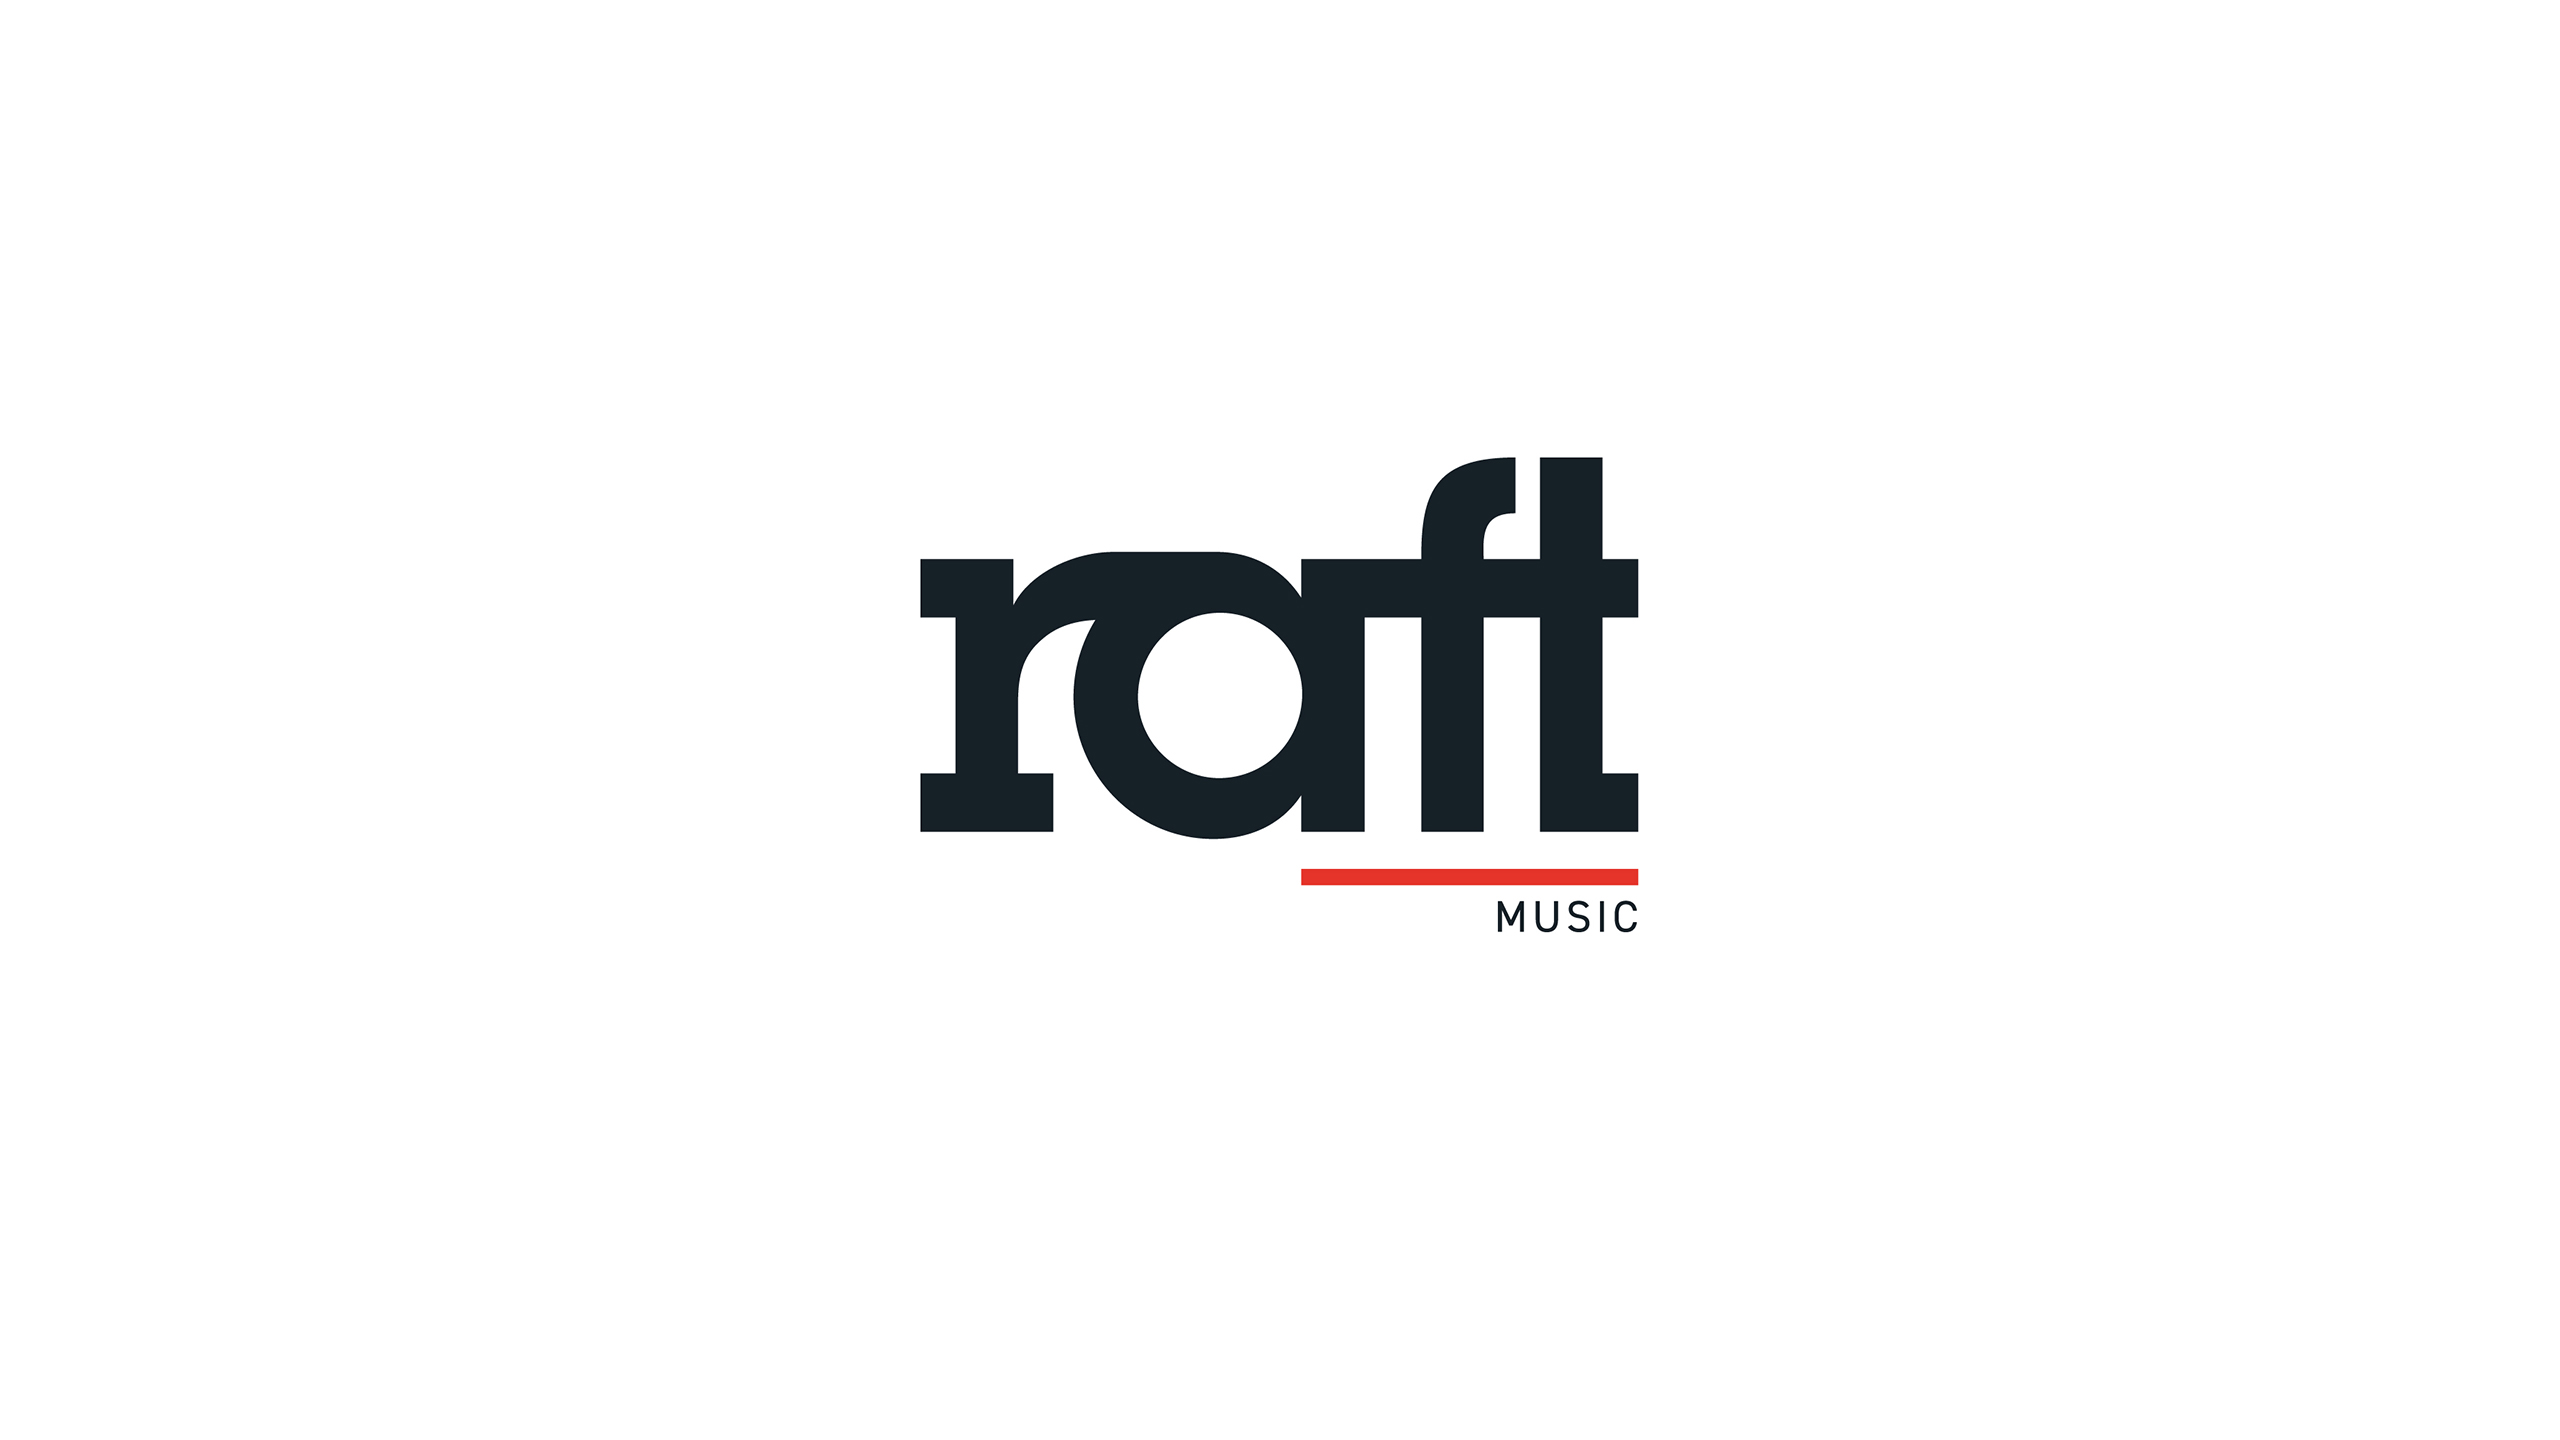 Raft music logo